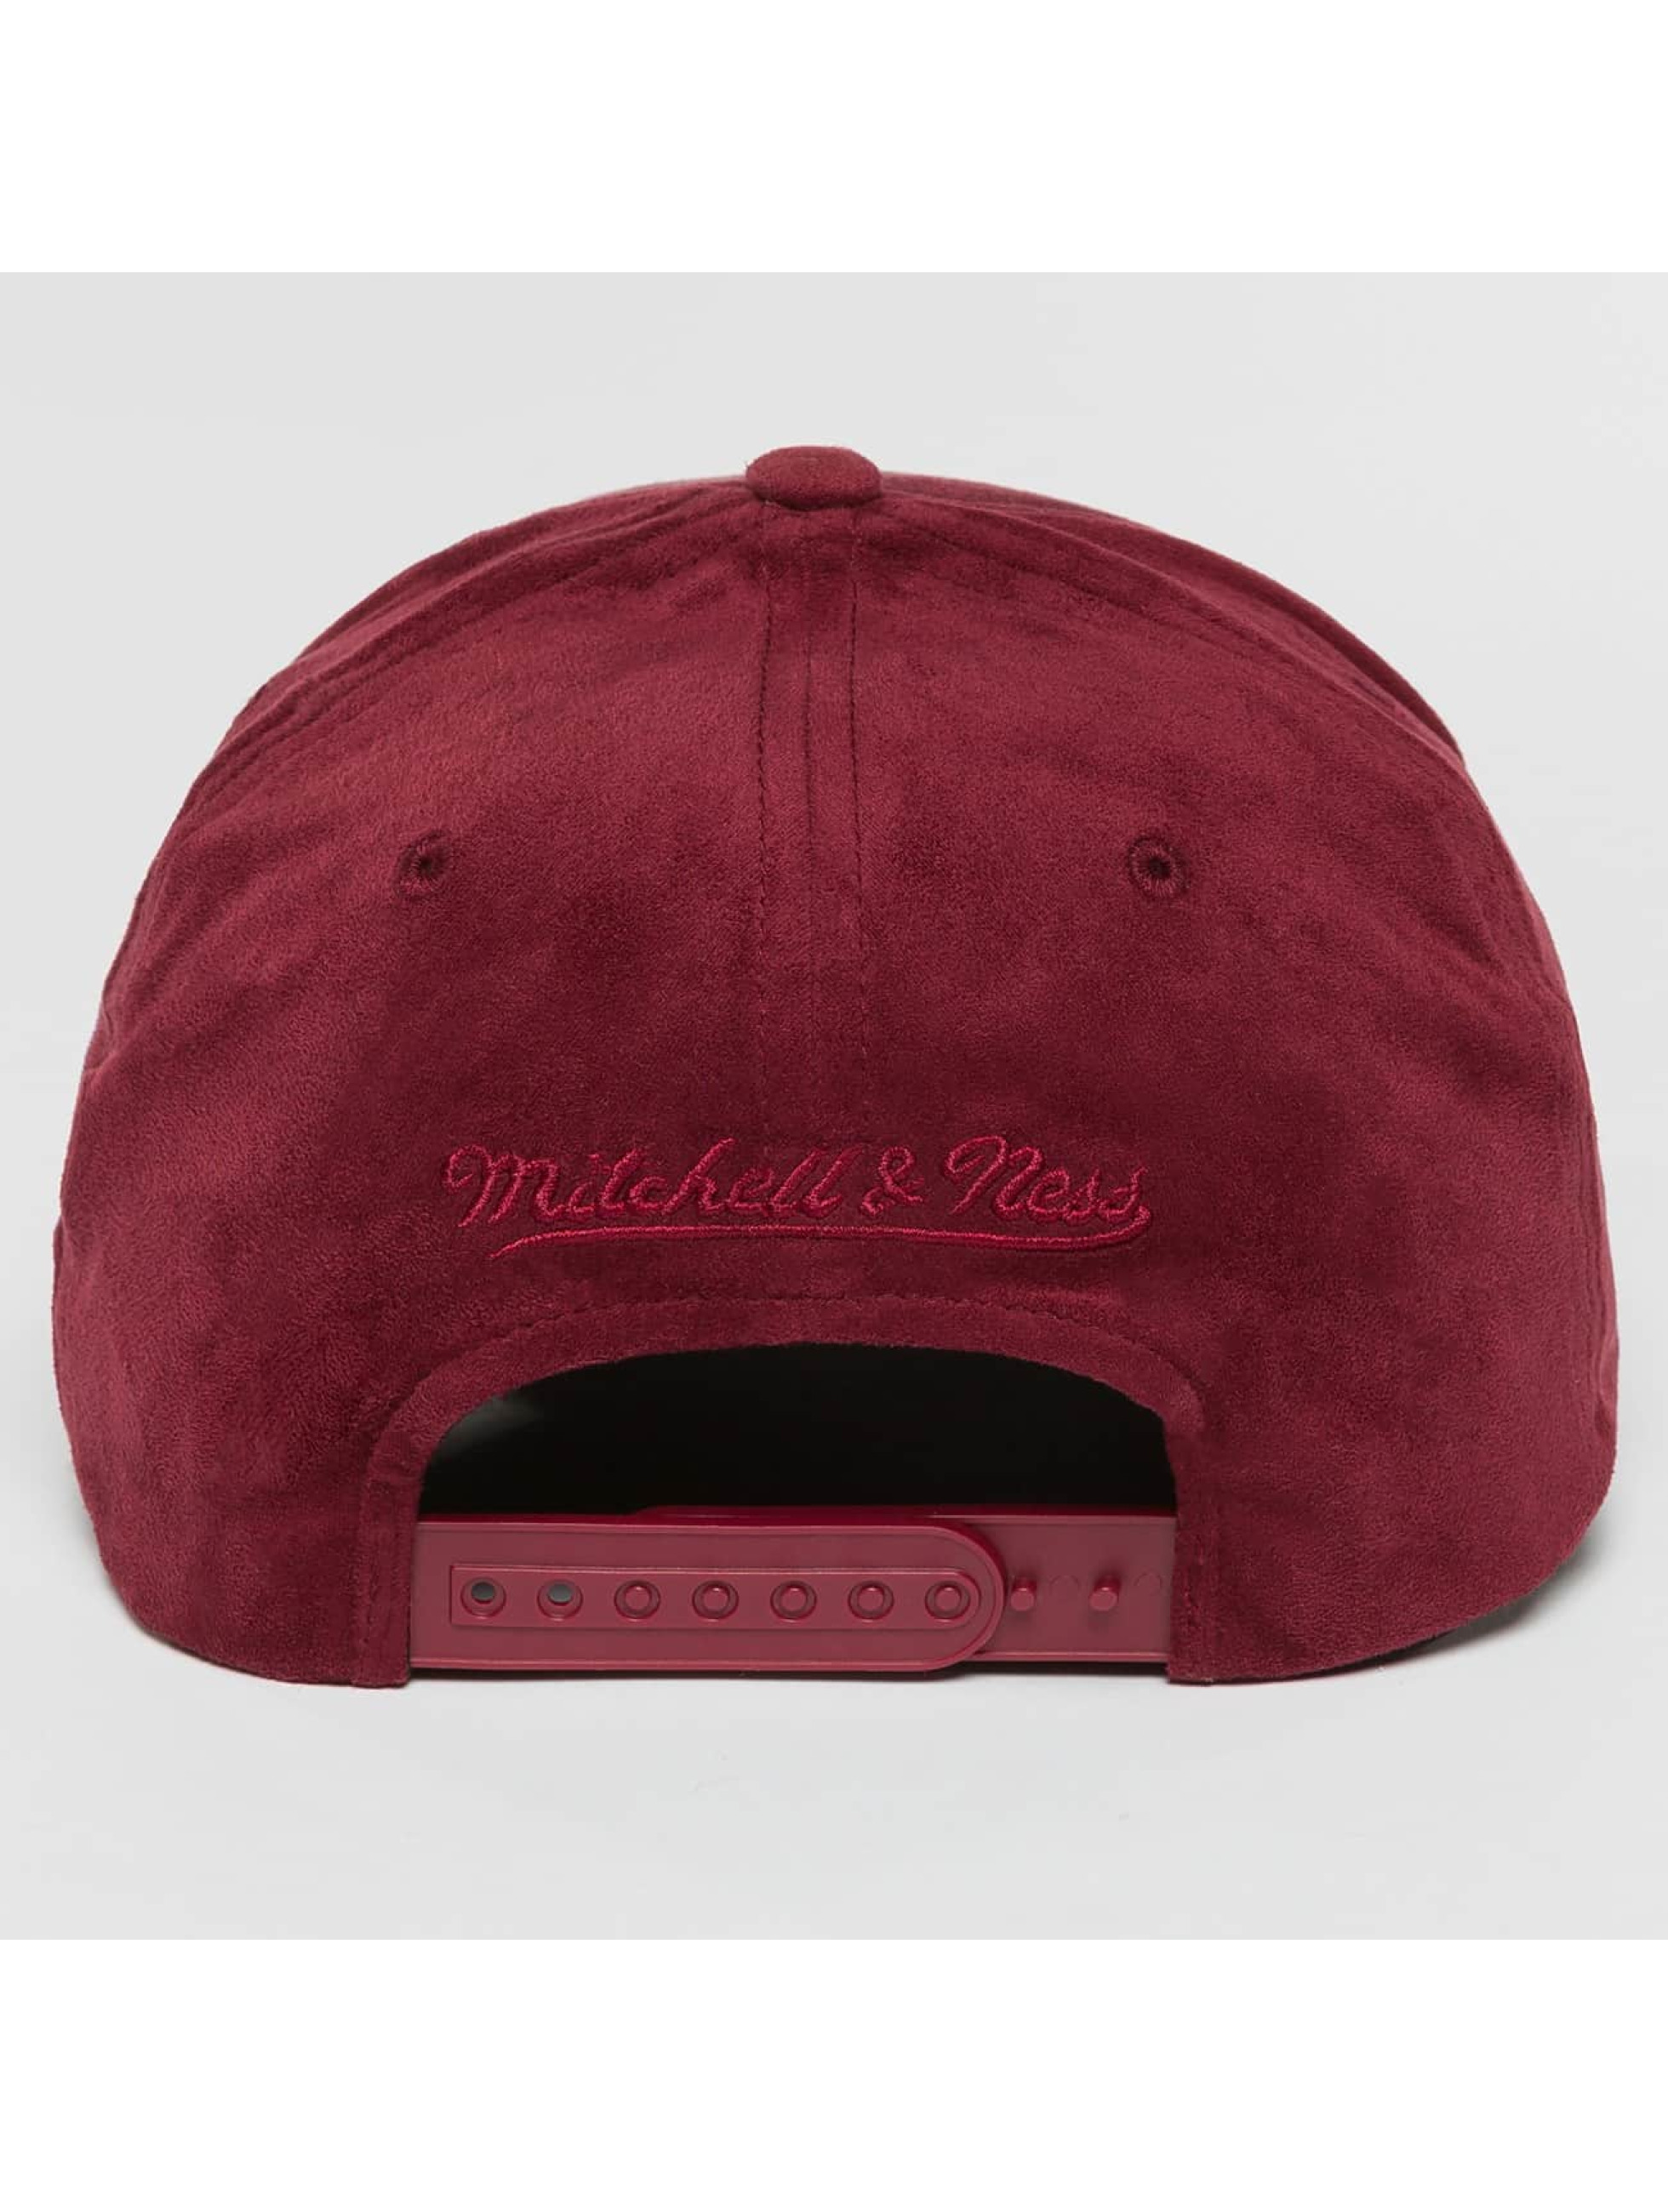 Mitchell & Ness Кепка с застёжкой 110 Curved NBA Cleveland Cavaliers Suede красный